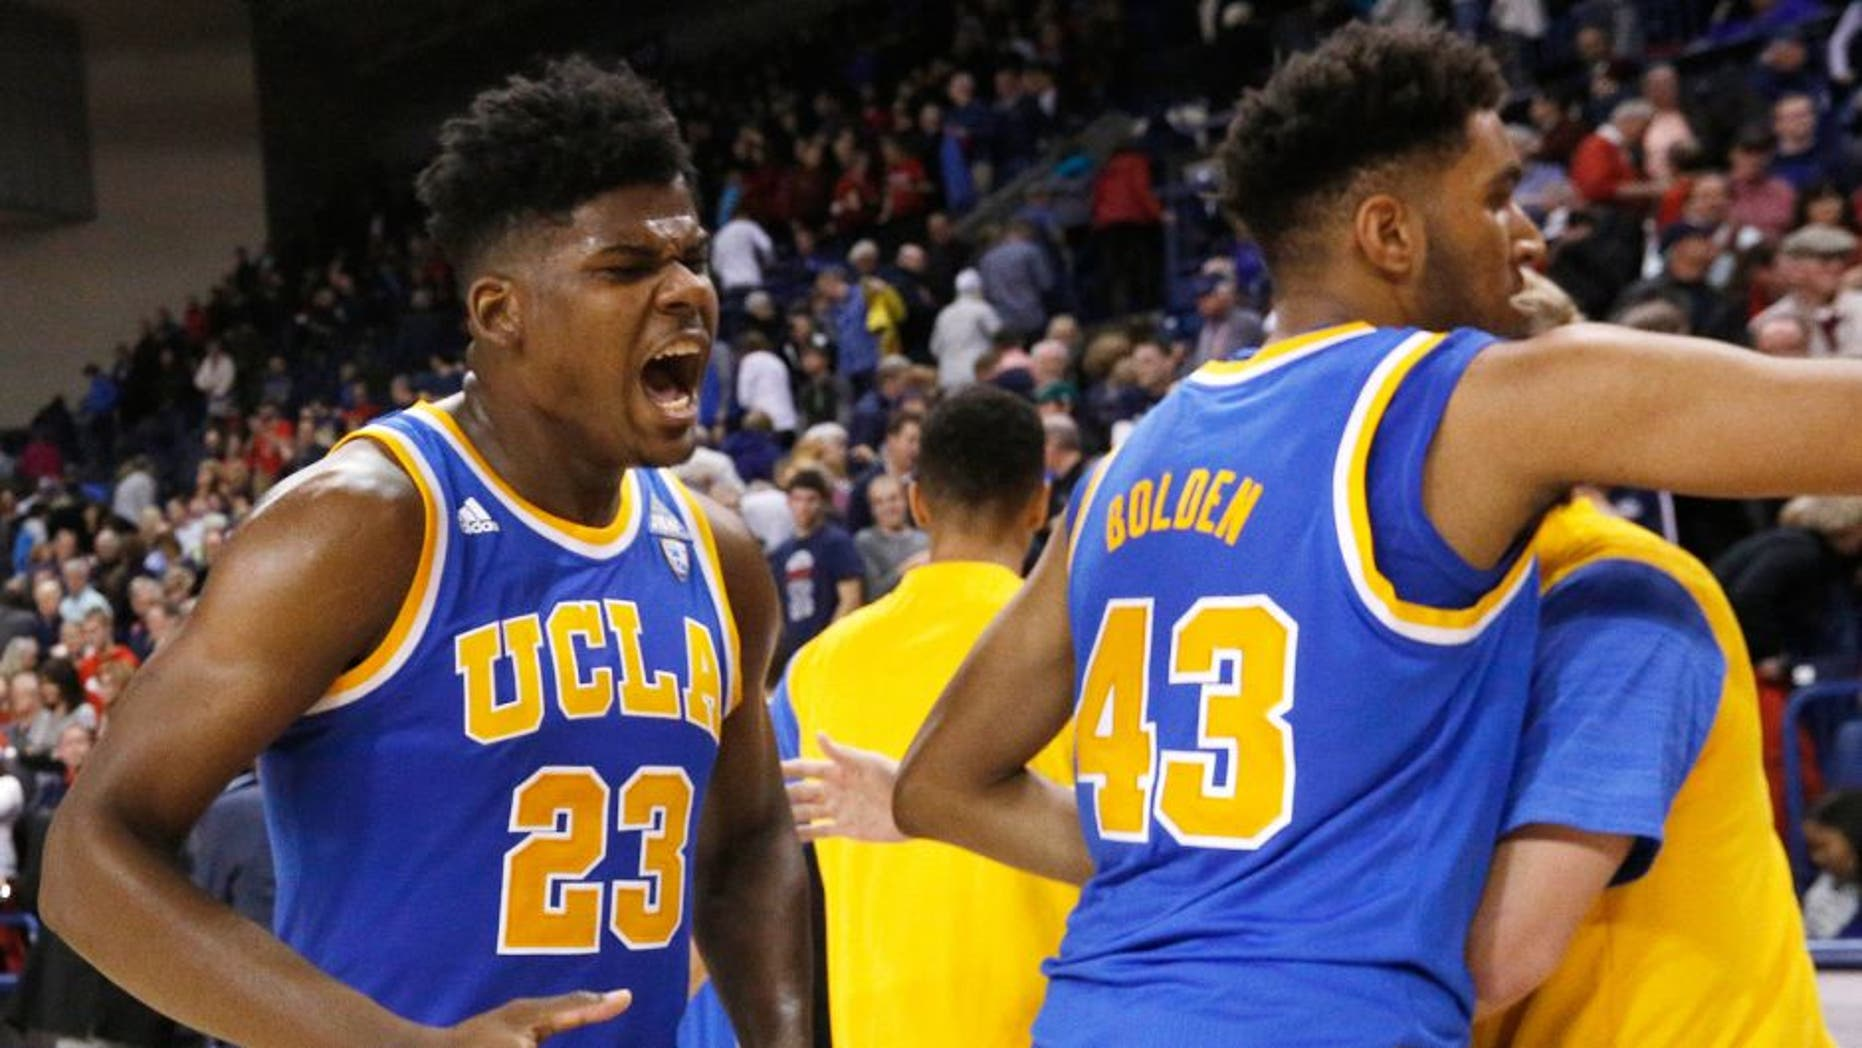 UCLA's Tony Parker (23) celebrates after an NCAA college basketball game against Gonzaga, Saturday, Dec. 12, 2015, in Spokane, Wash. UCLA won 71-66. (AP Photo/Young Kwak)